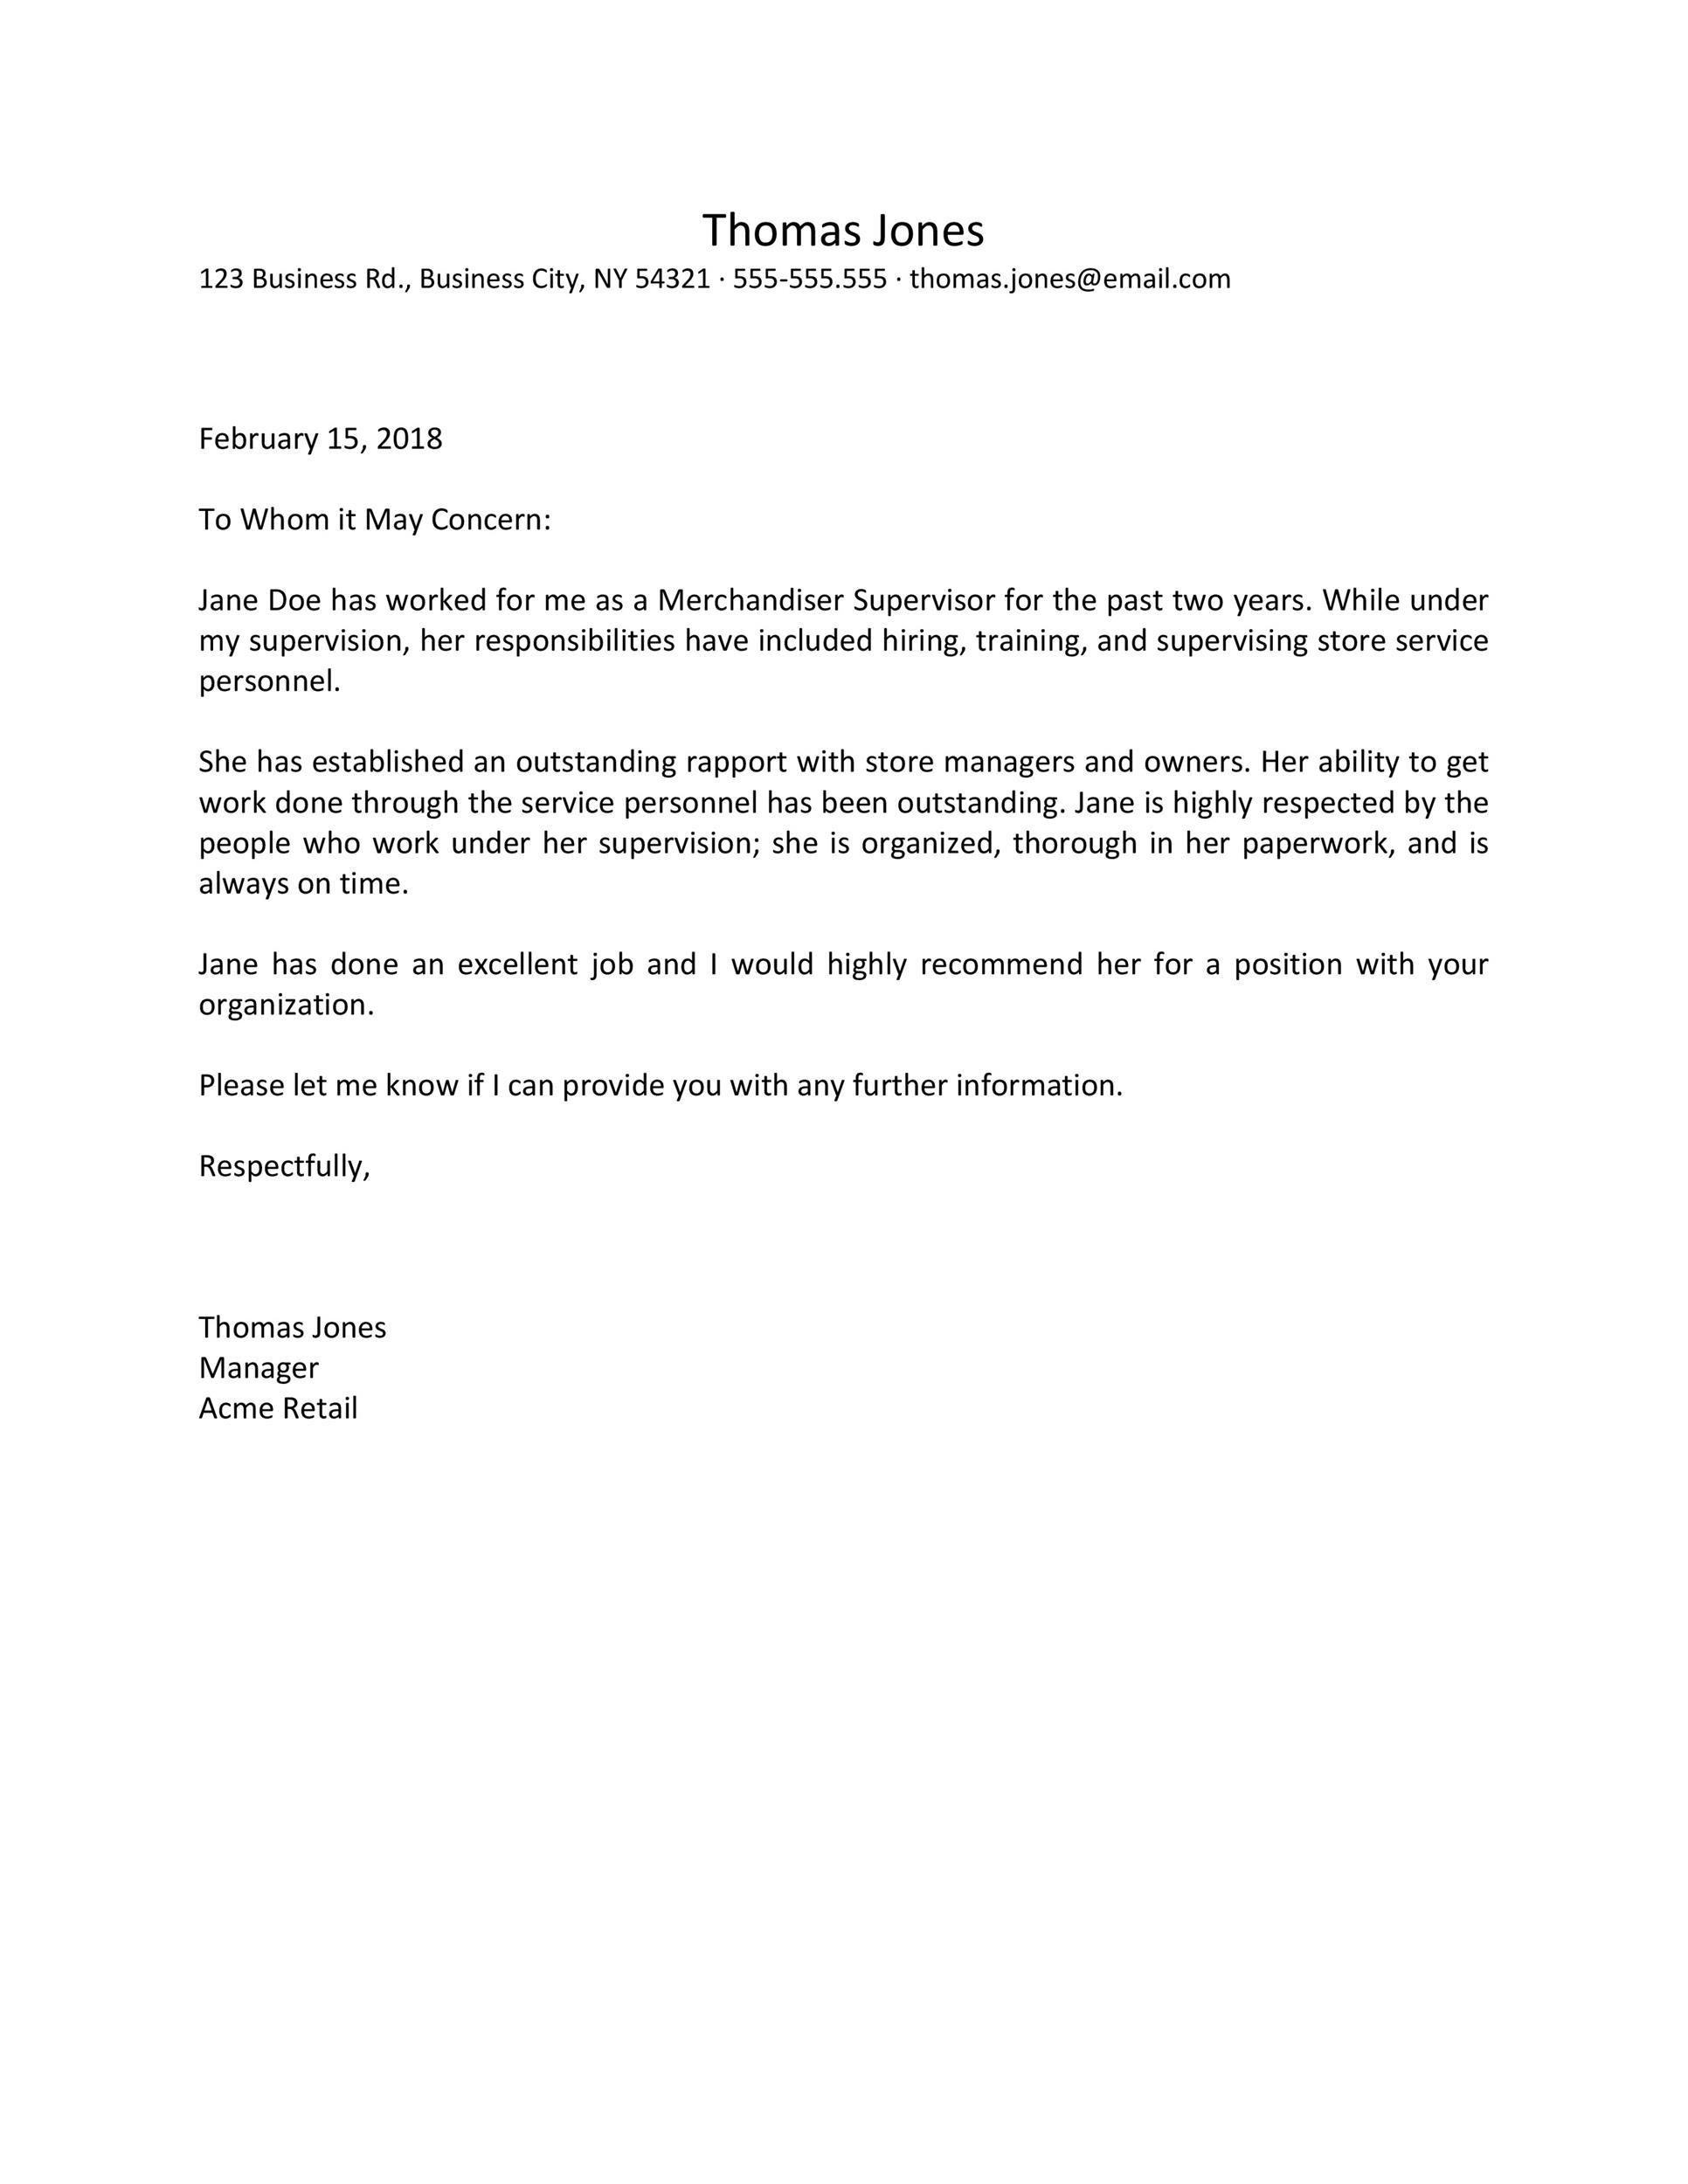 Free Recommendation Letter From Manager Template 30